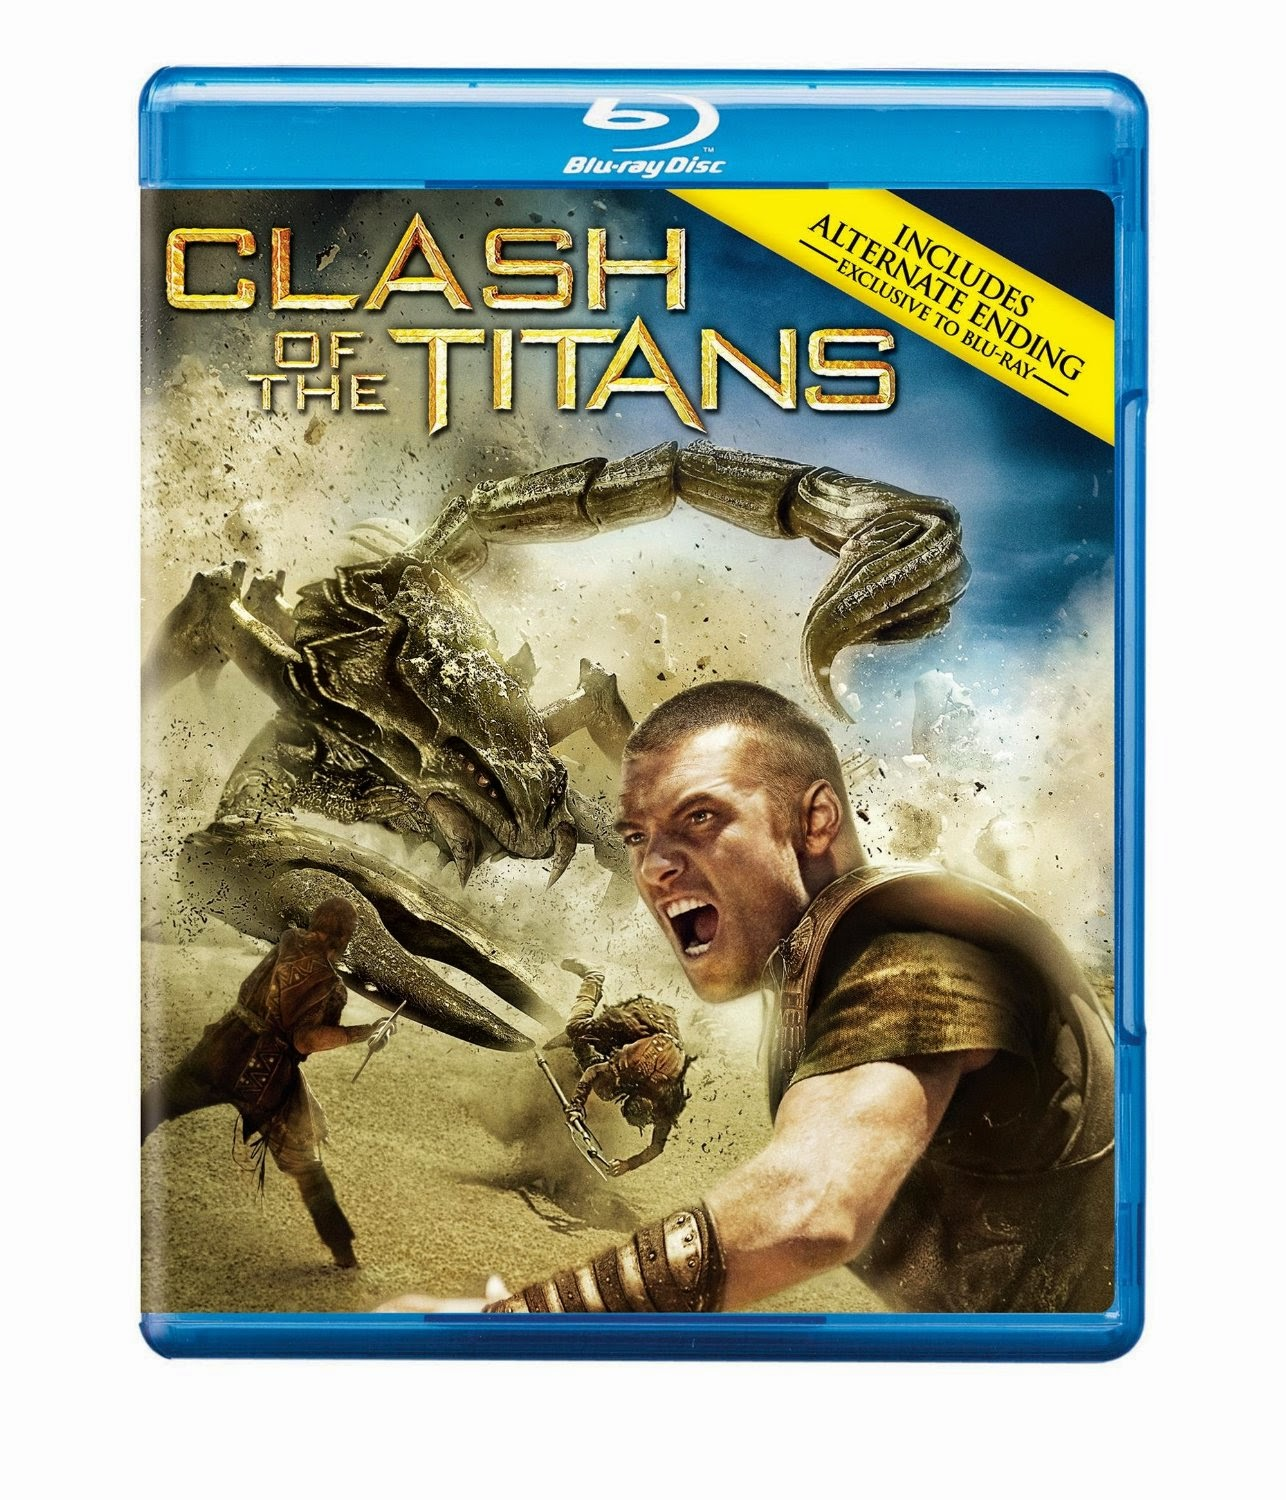 Clash-of-the-Titans-DVD